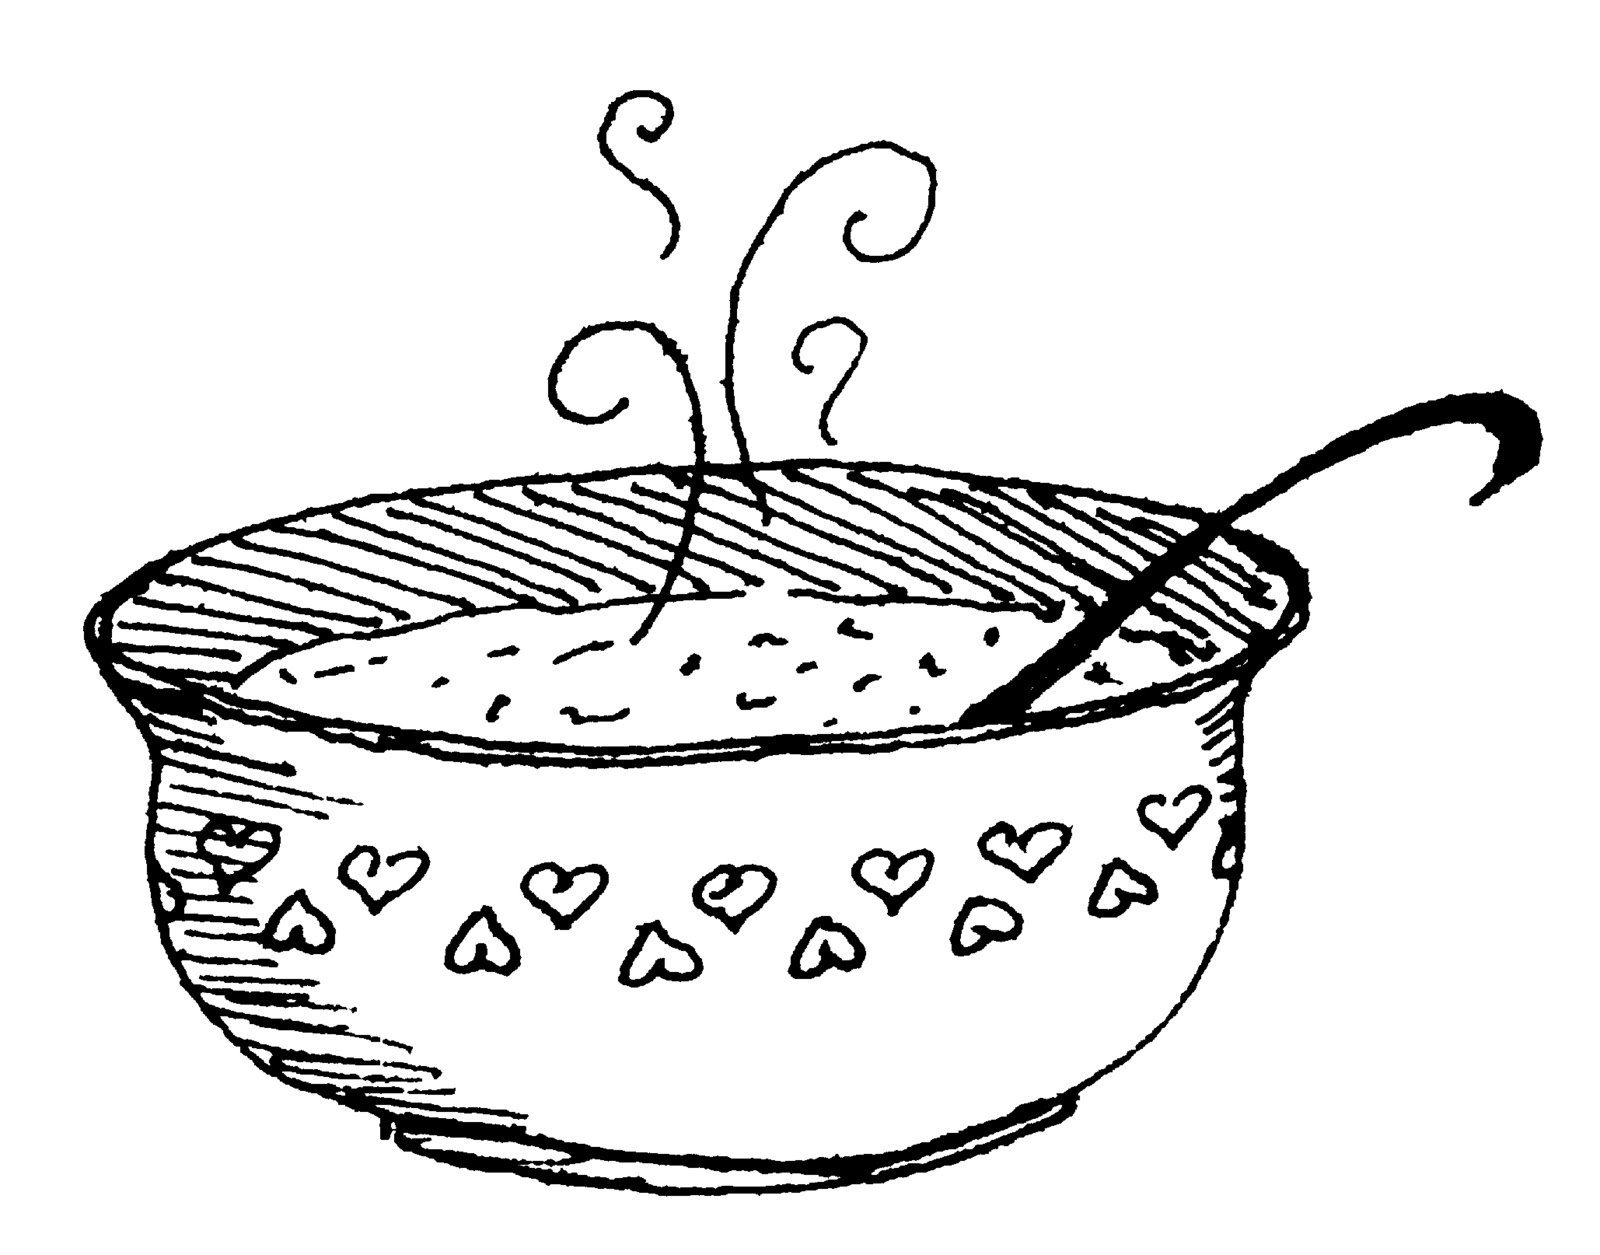 Chicken Soup clipart black and white The Chicken Table Tami: Enchilada